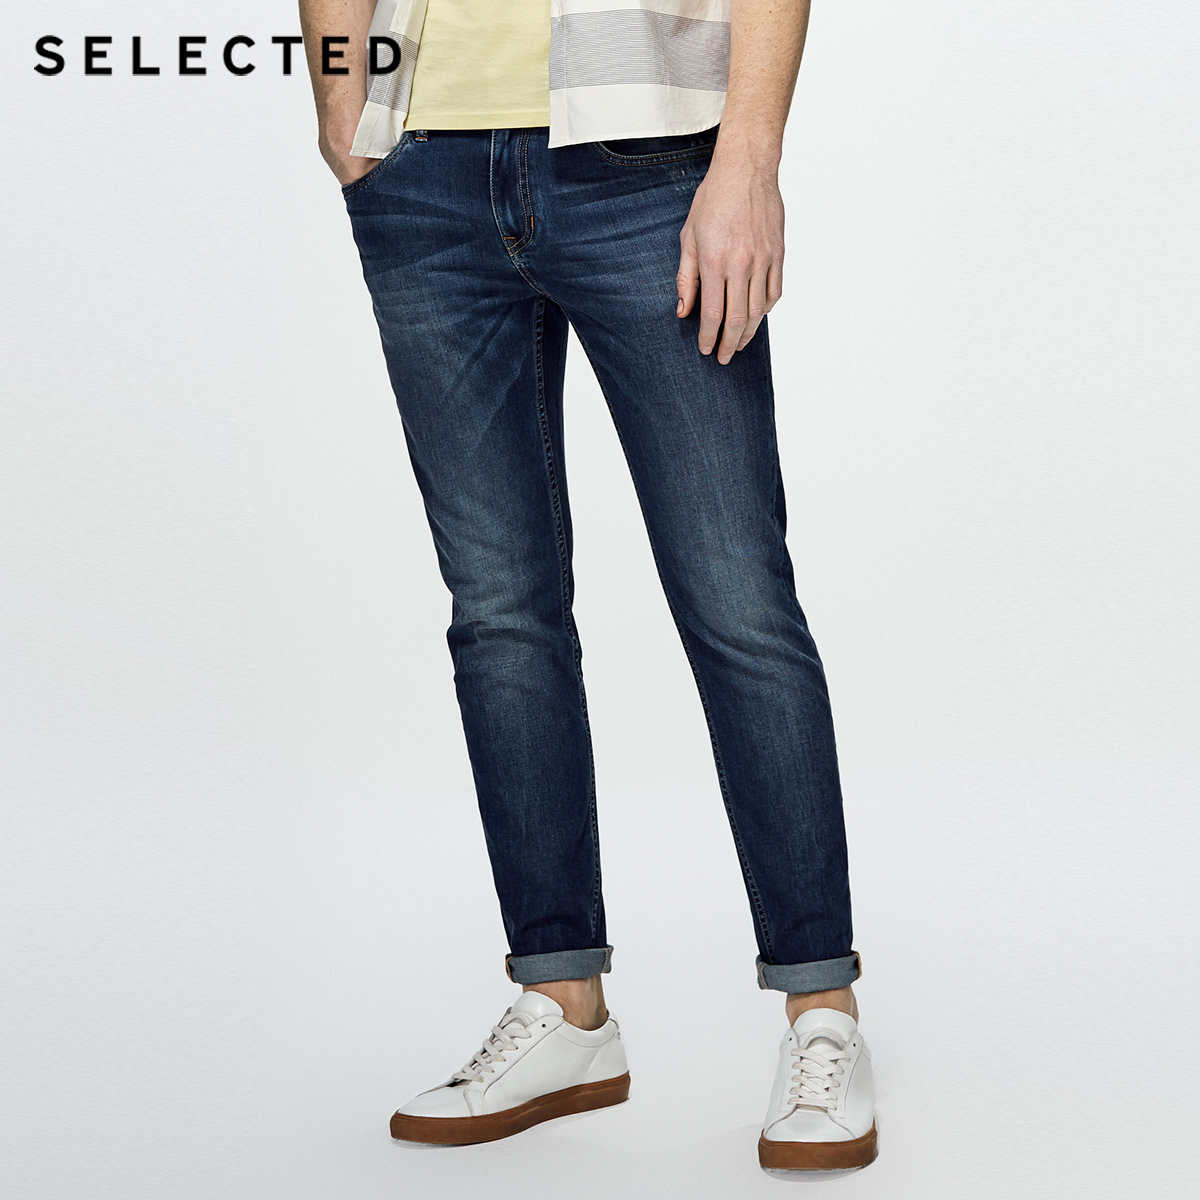 SELECTED Cotton-blend slim faded and washed jean pants C|418232519(China)